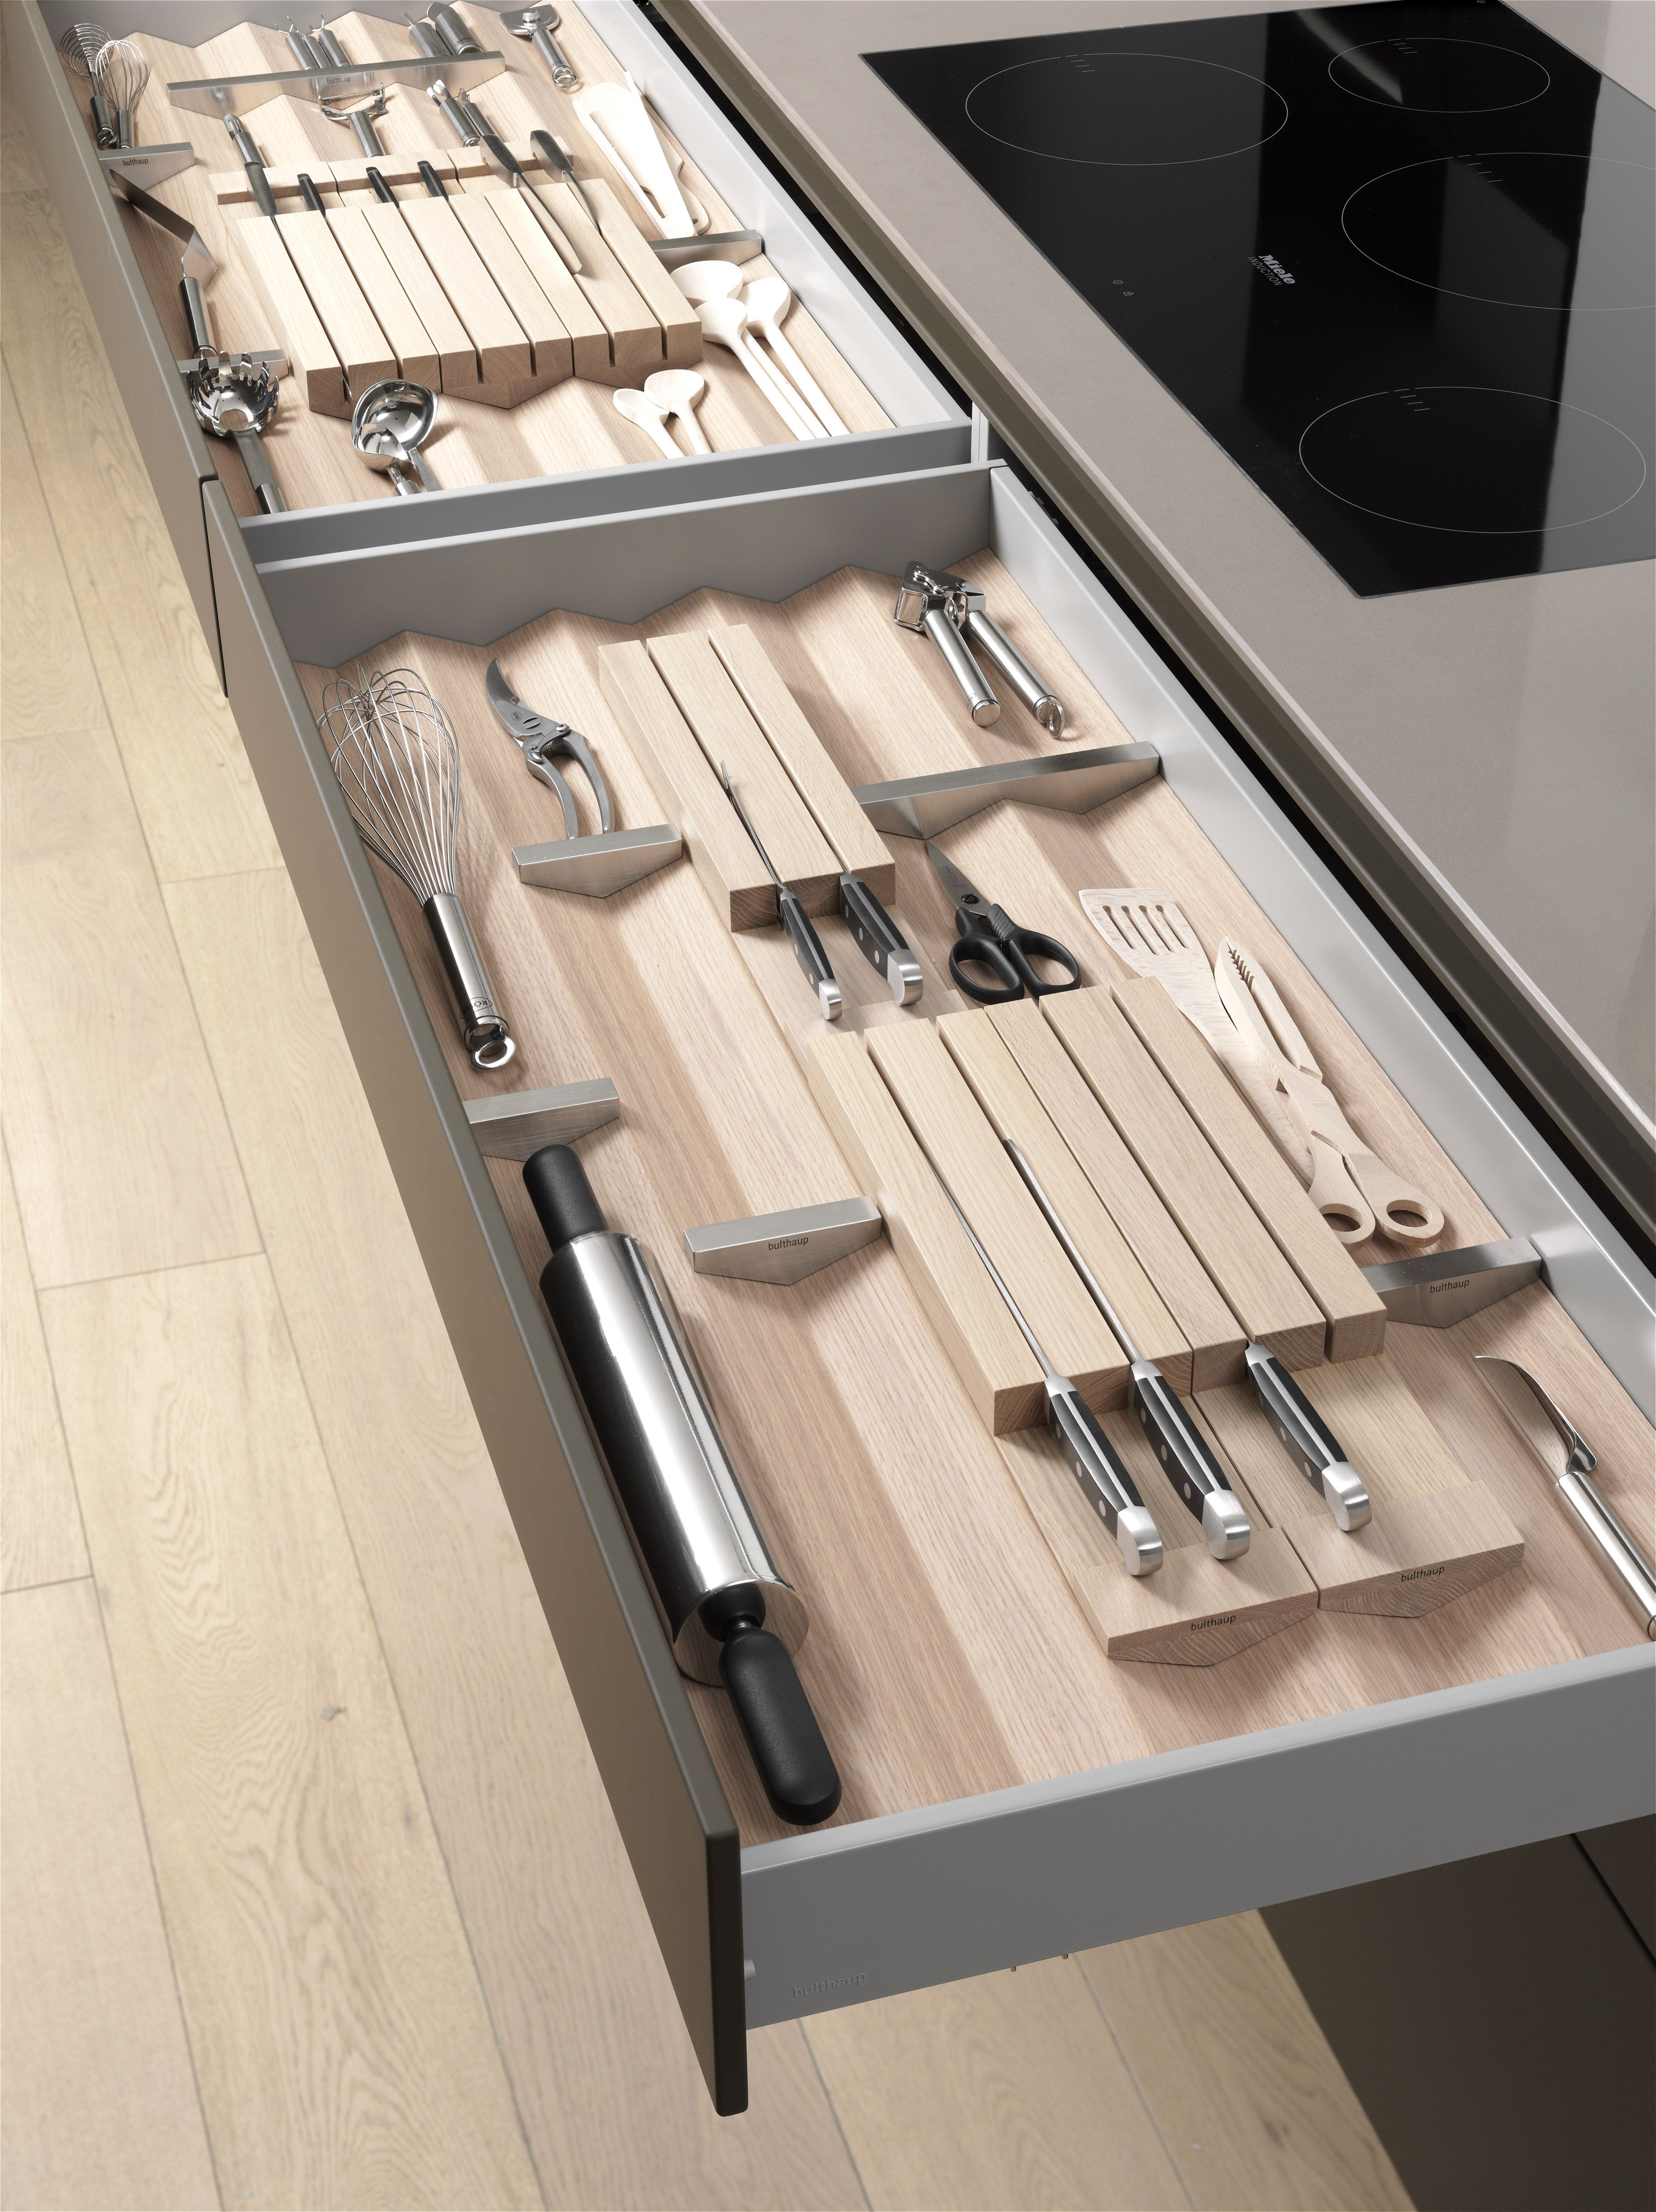 Bulthaup drawers design kitchen for Bulthaup kitchen cabinets